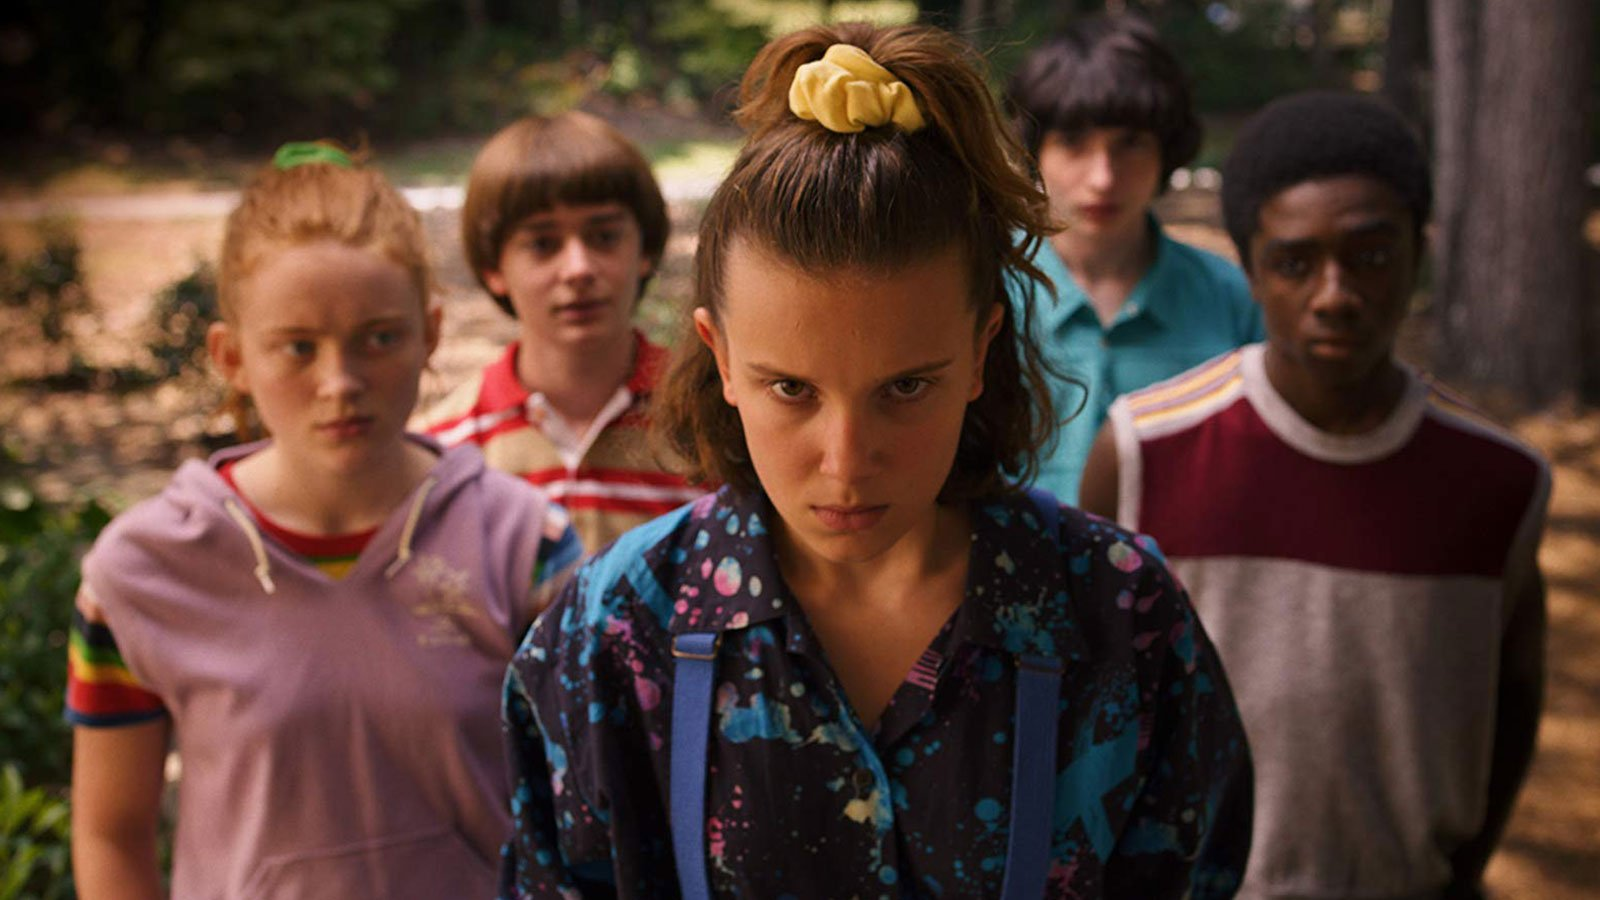 Stranger Things Season Three Review - OC Movie Reviews - Movie Reviews, Movie News, Documentary Reviews, Short Films, Short Film Reviews, Trailers, Movie Trailers, Interviews, film reviews, film news, hollywood, indie films, documentaries, TV shows